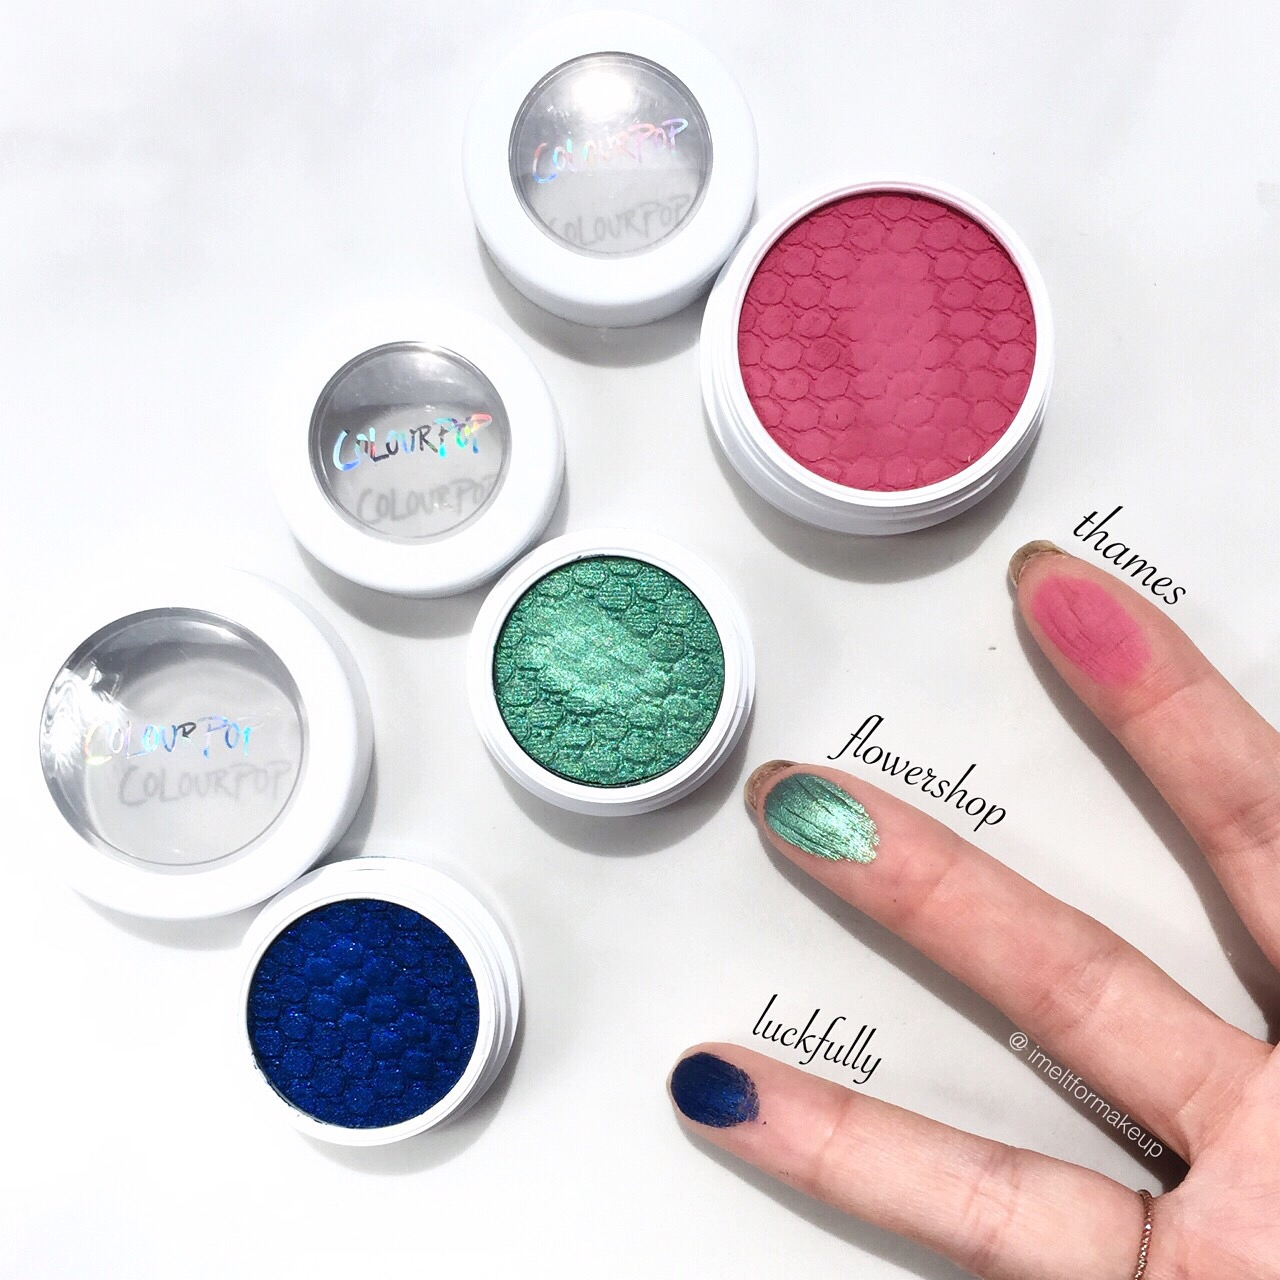 Colourpop Luckfully  swatch, colourpop flower shop swatch, colourpop thames swatch